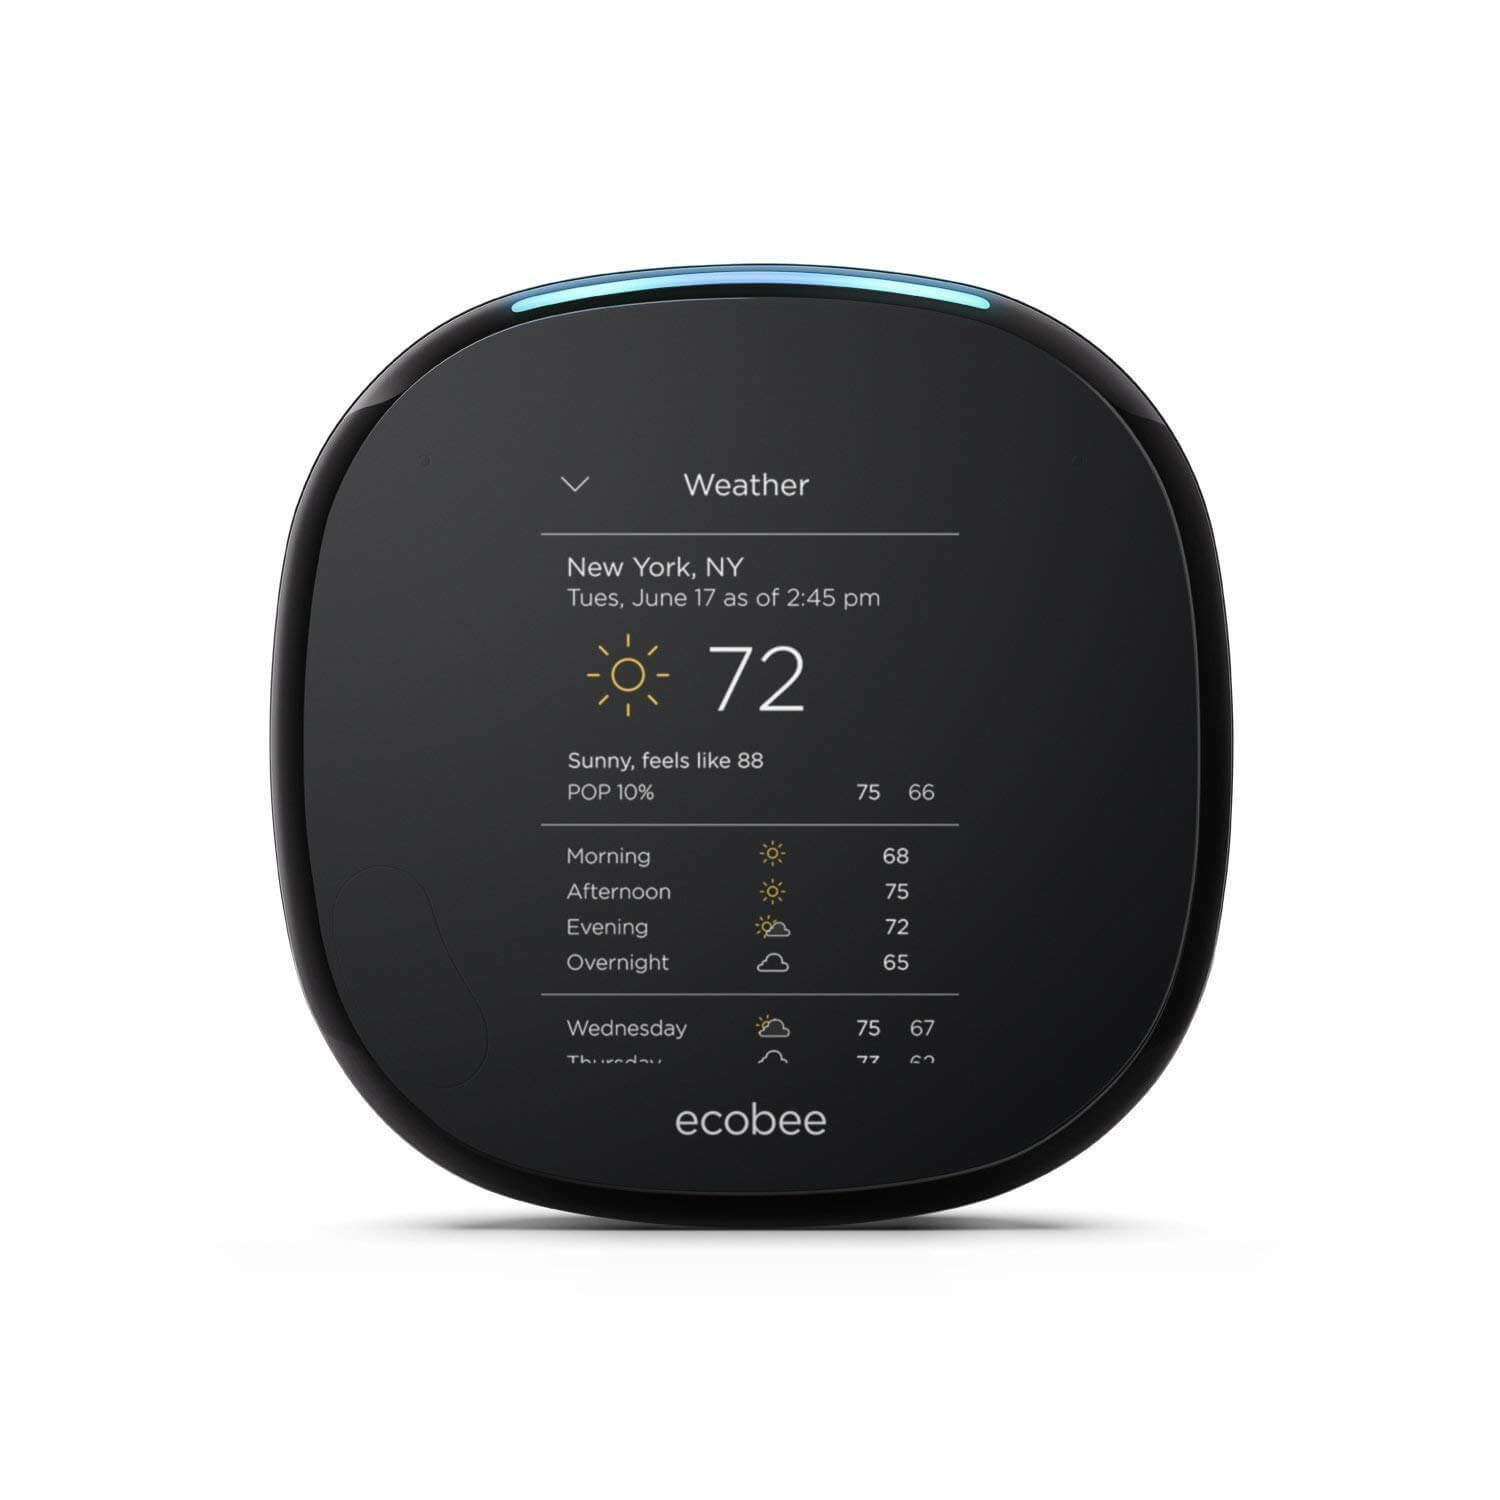 ecobee thermostat review